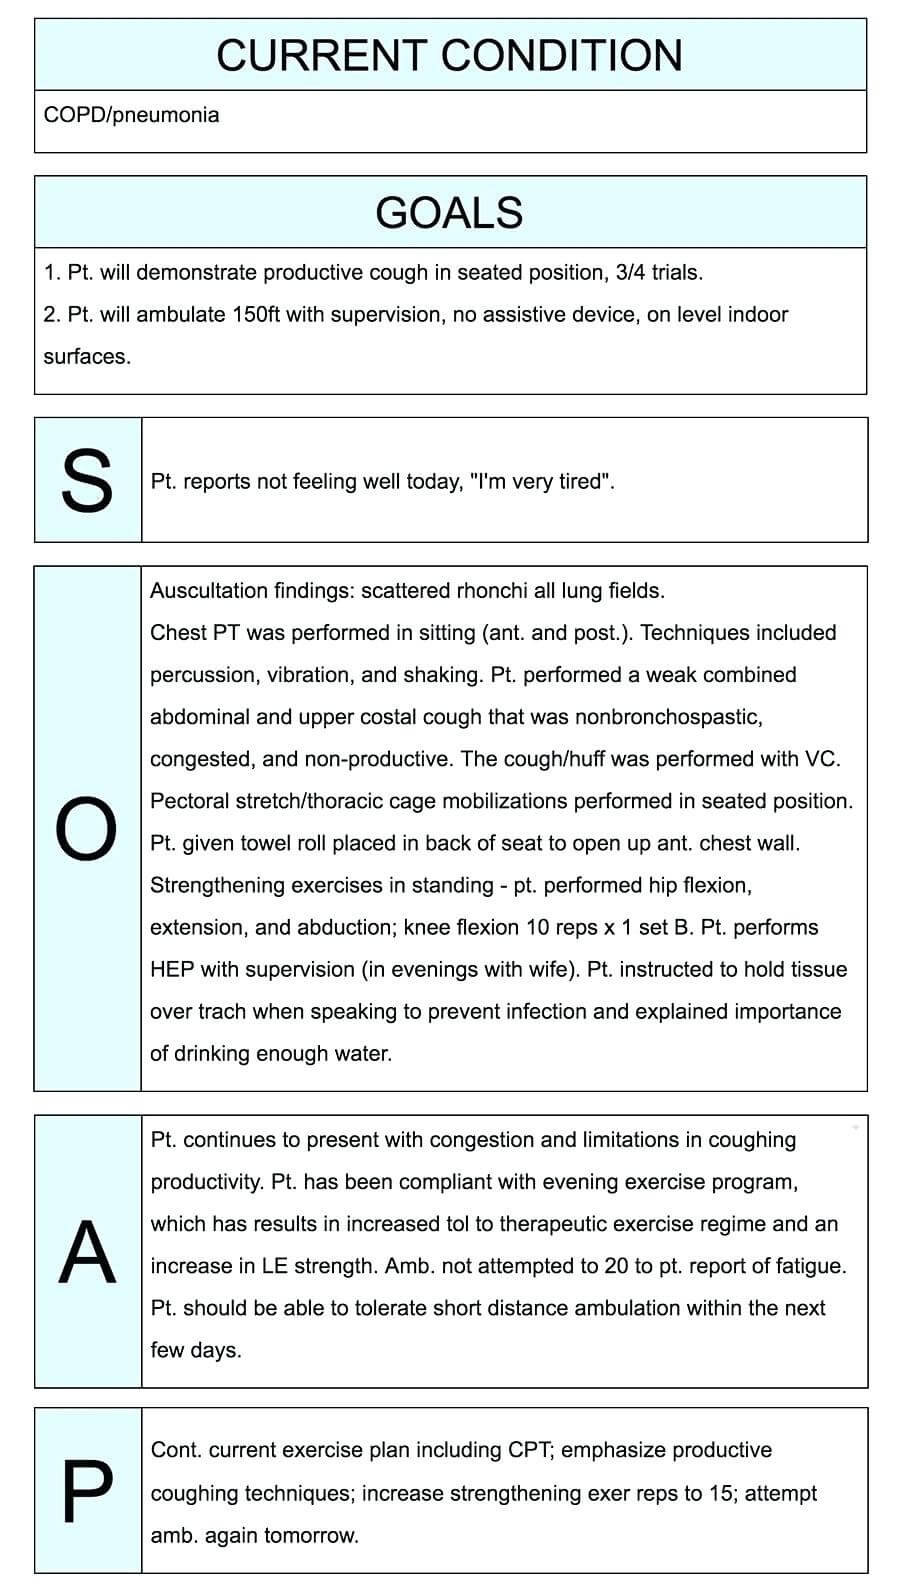 021 Soap Note Template Word Ideas Example Mental Health Ems with regard to Soap Note Template Word